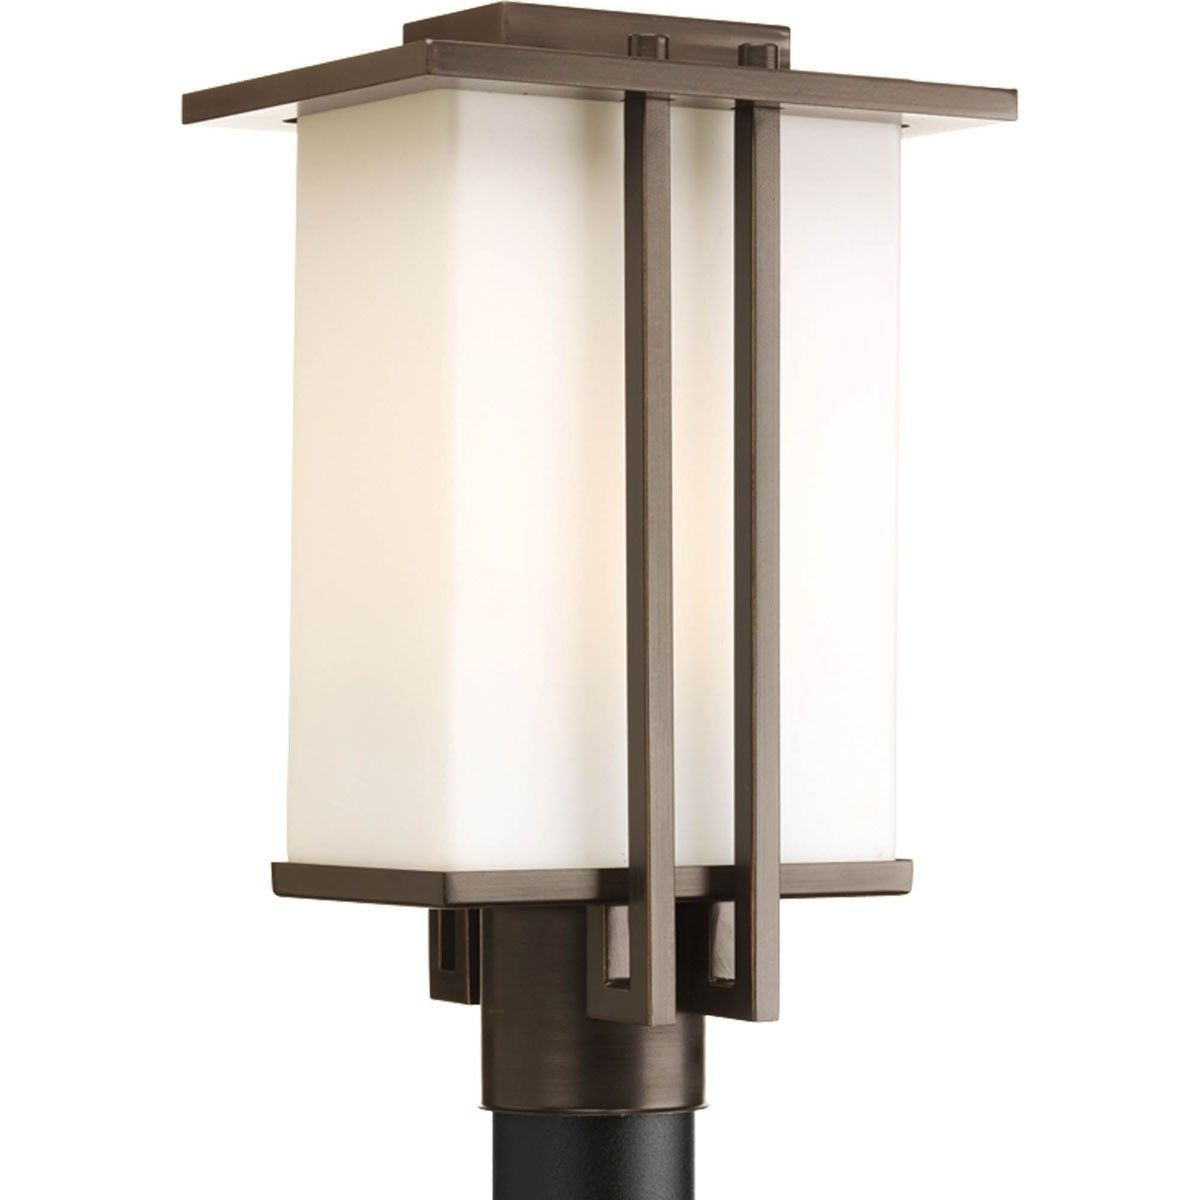 Outdoor Post Lantern Light Fixtures | Http://afshowcaseprop inside Outdoor Post Lanterns (Image 11 of 20)